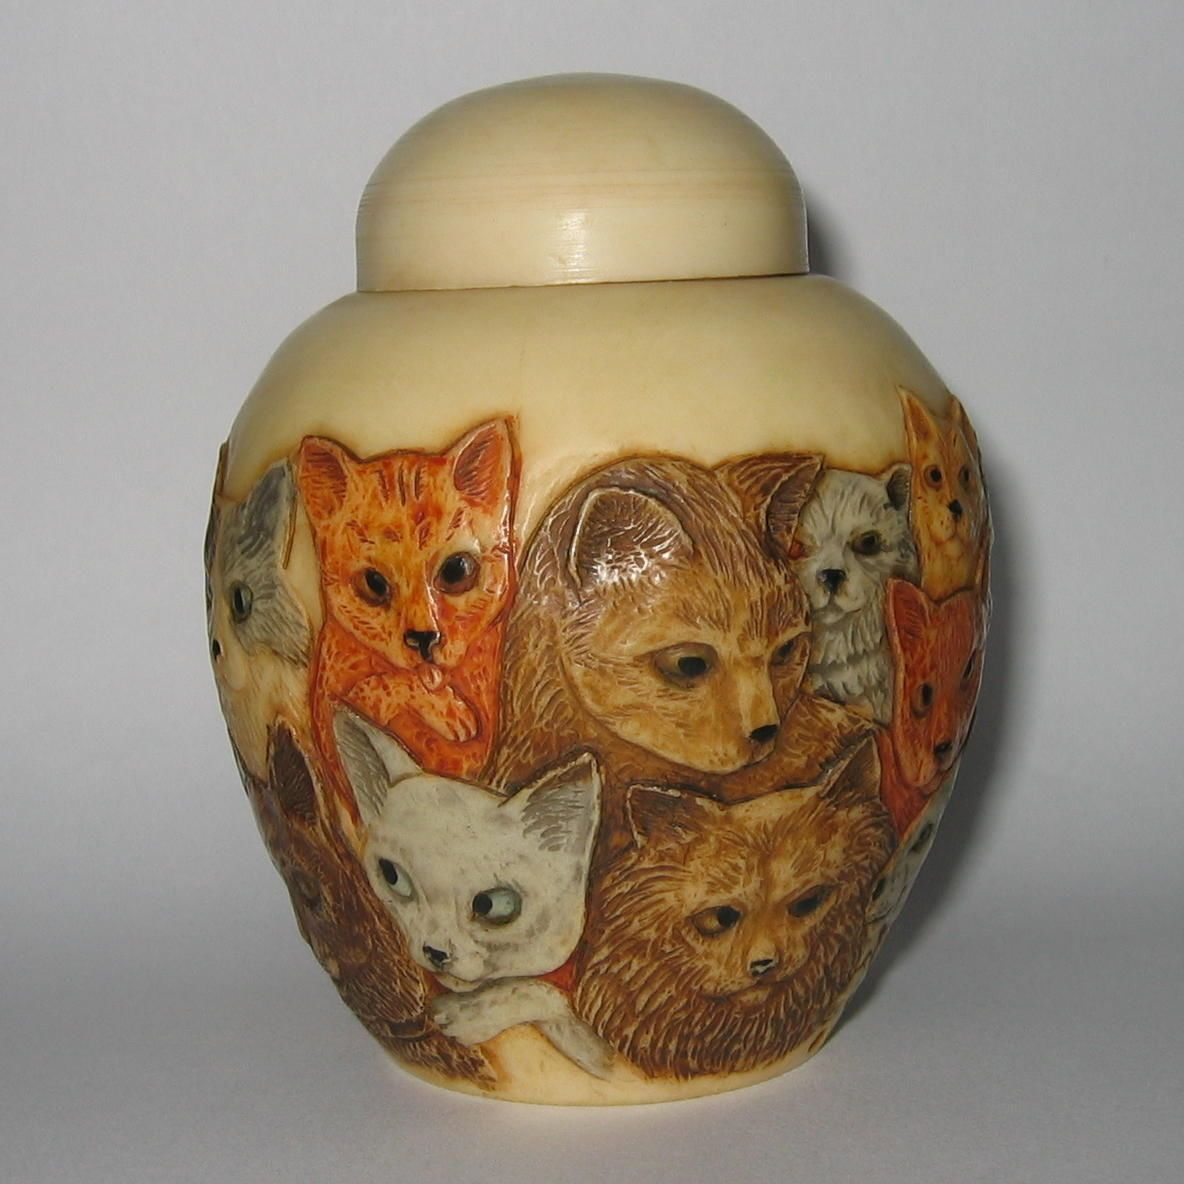 Details about Kitty Litter Cat / Kitten Trinket Pot